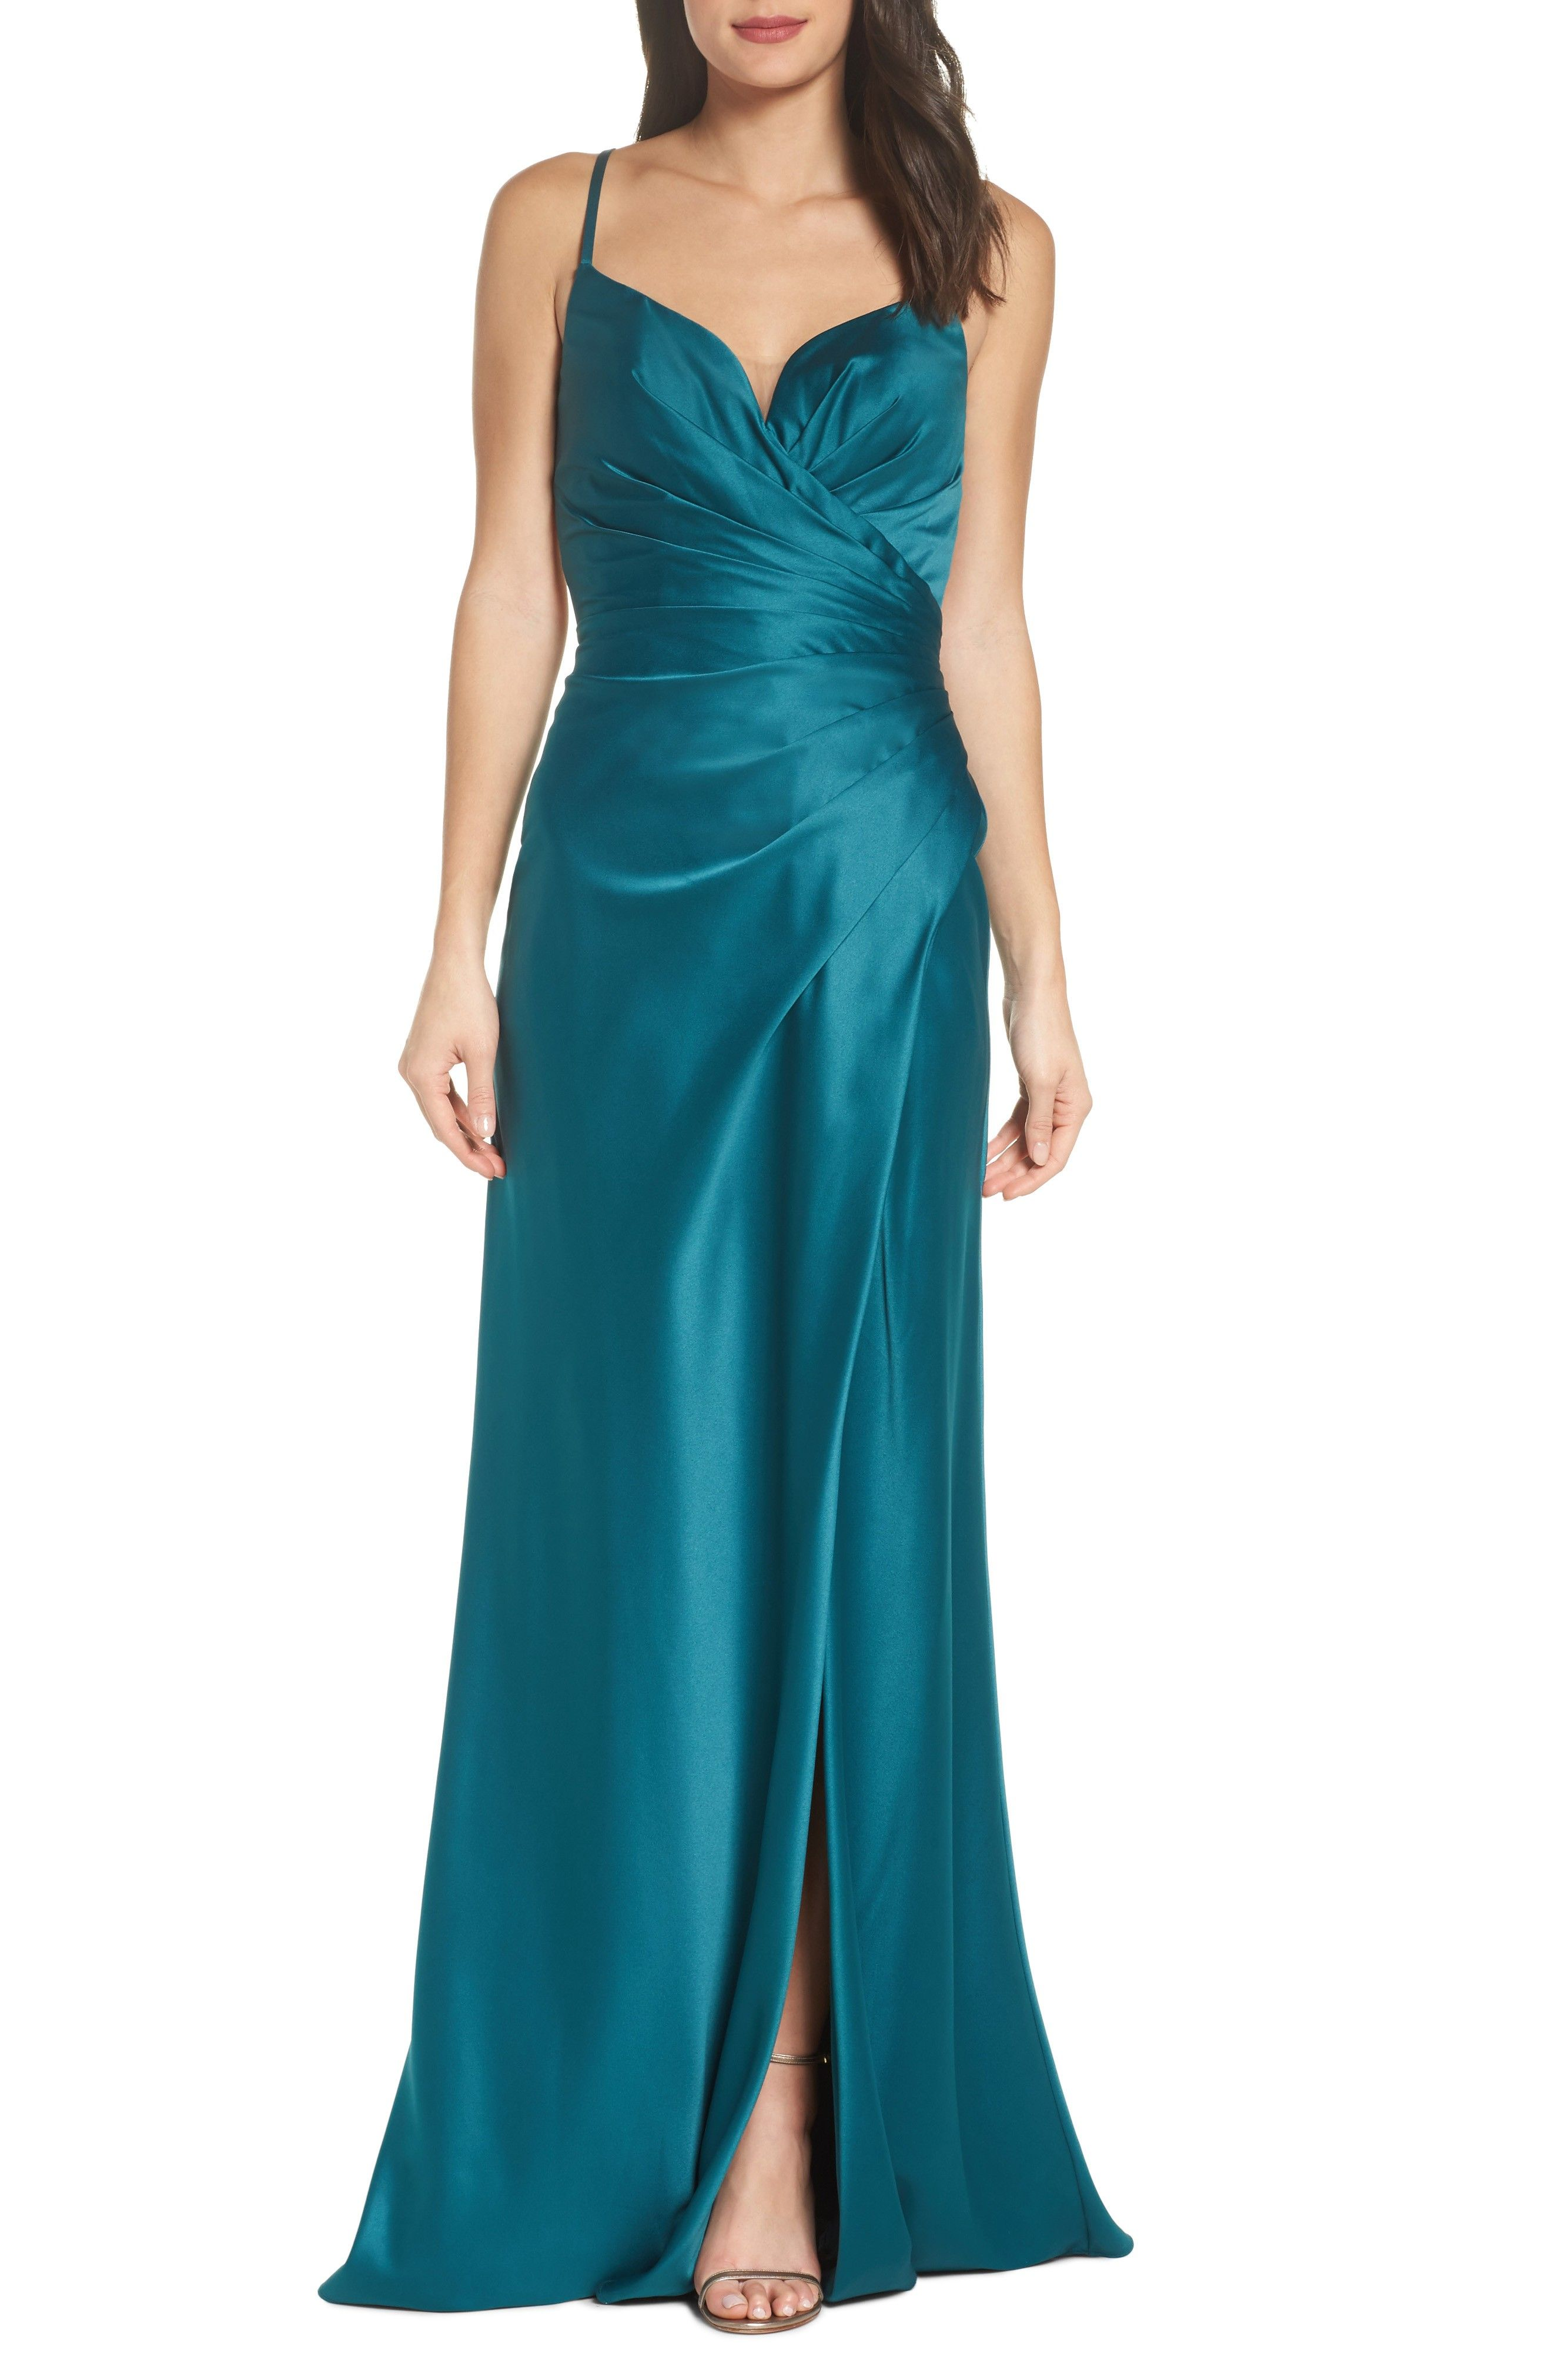 Teal prom dress - Strappy Ruched Bodice Gown #ad #promdress | Prom ...